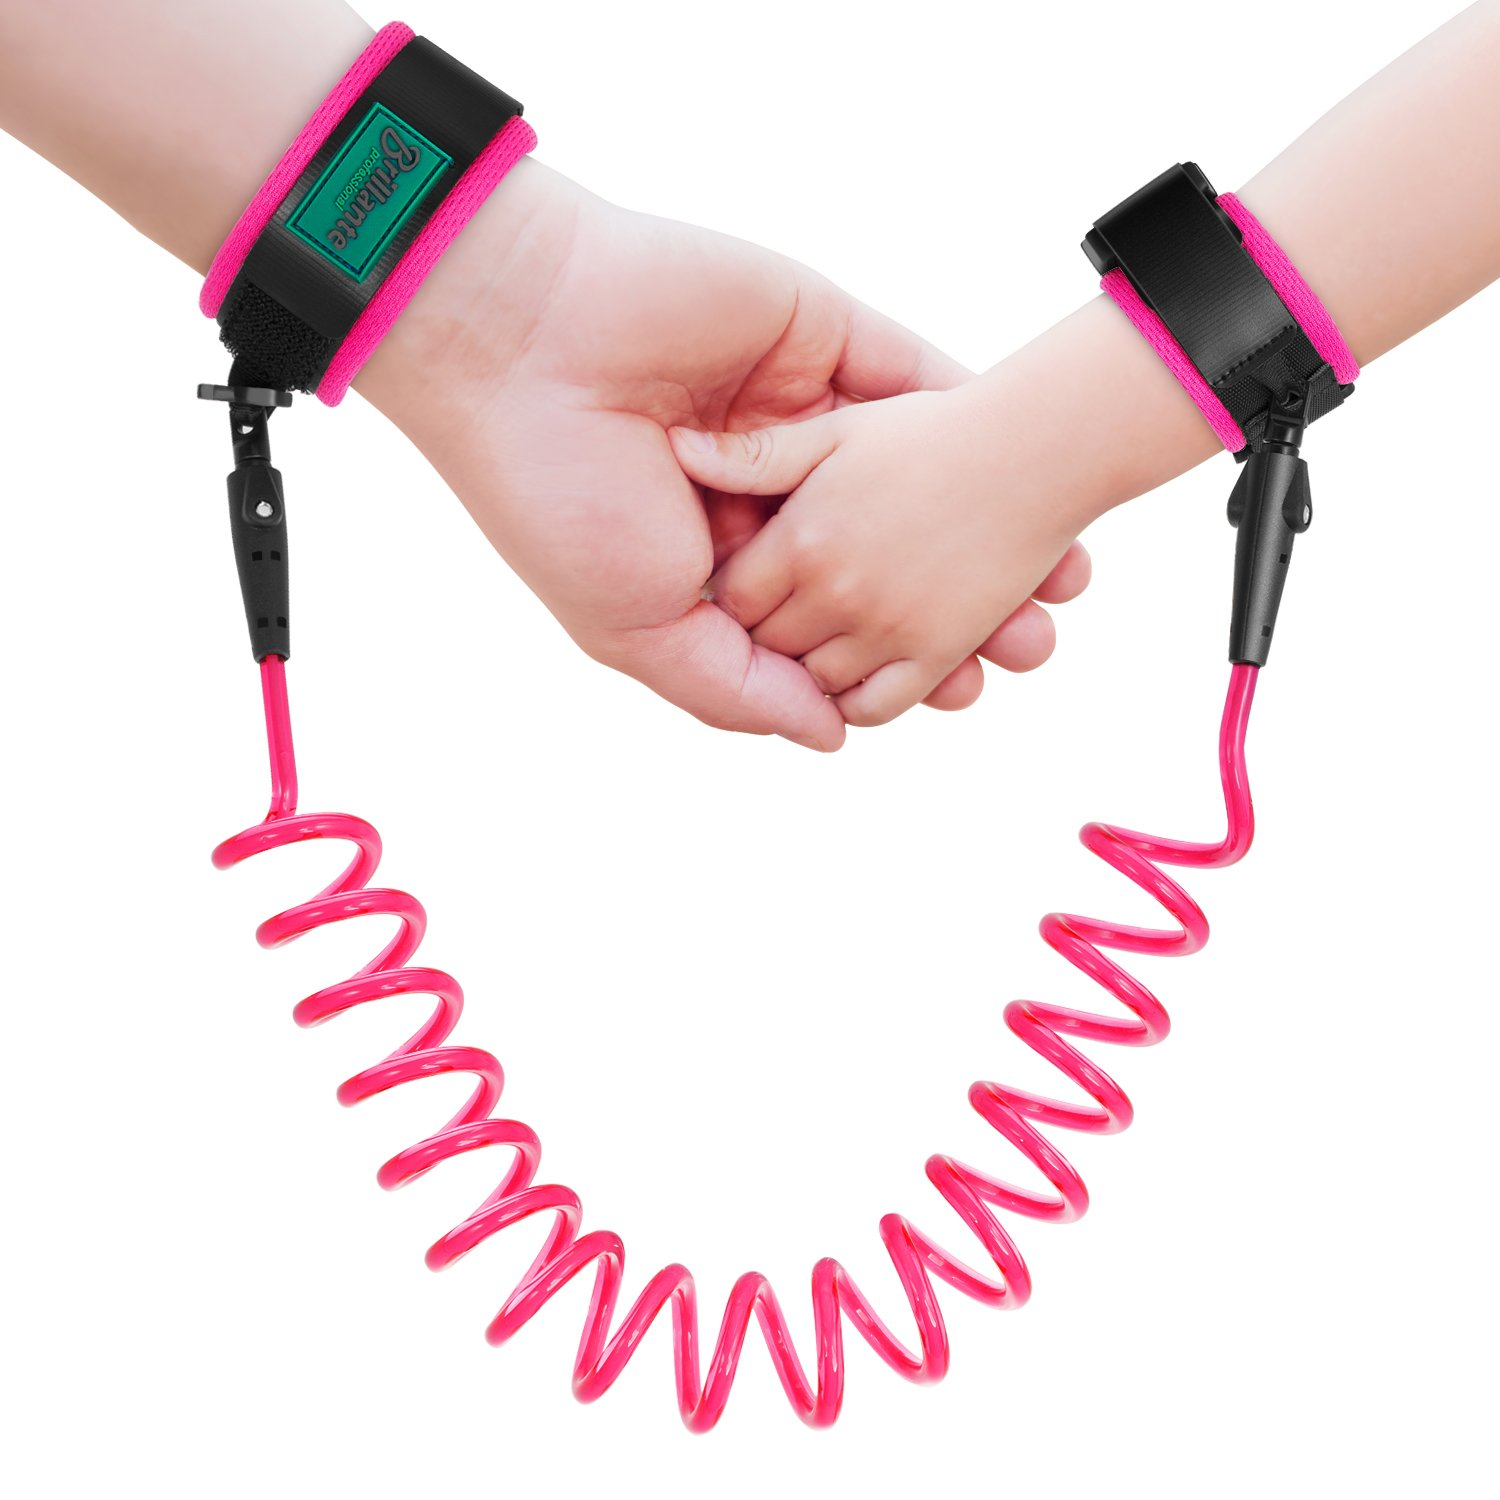 Brillante Anti Lost Wrist Link Child Wrist Strap Safety Toddler Harness Wrist Strap for Children, Leash for Kids, Toddlers, Babies, 1.5M (Pink) BFD-01